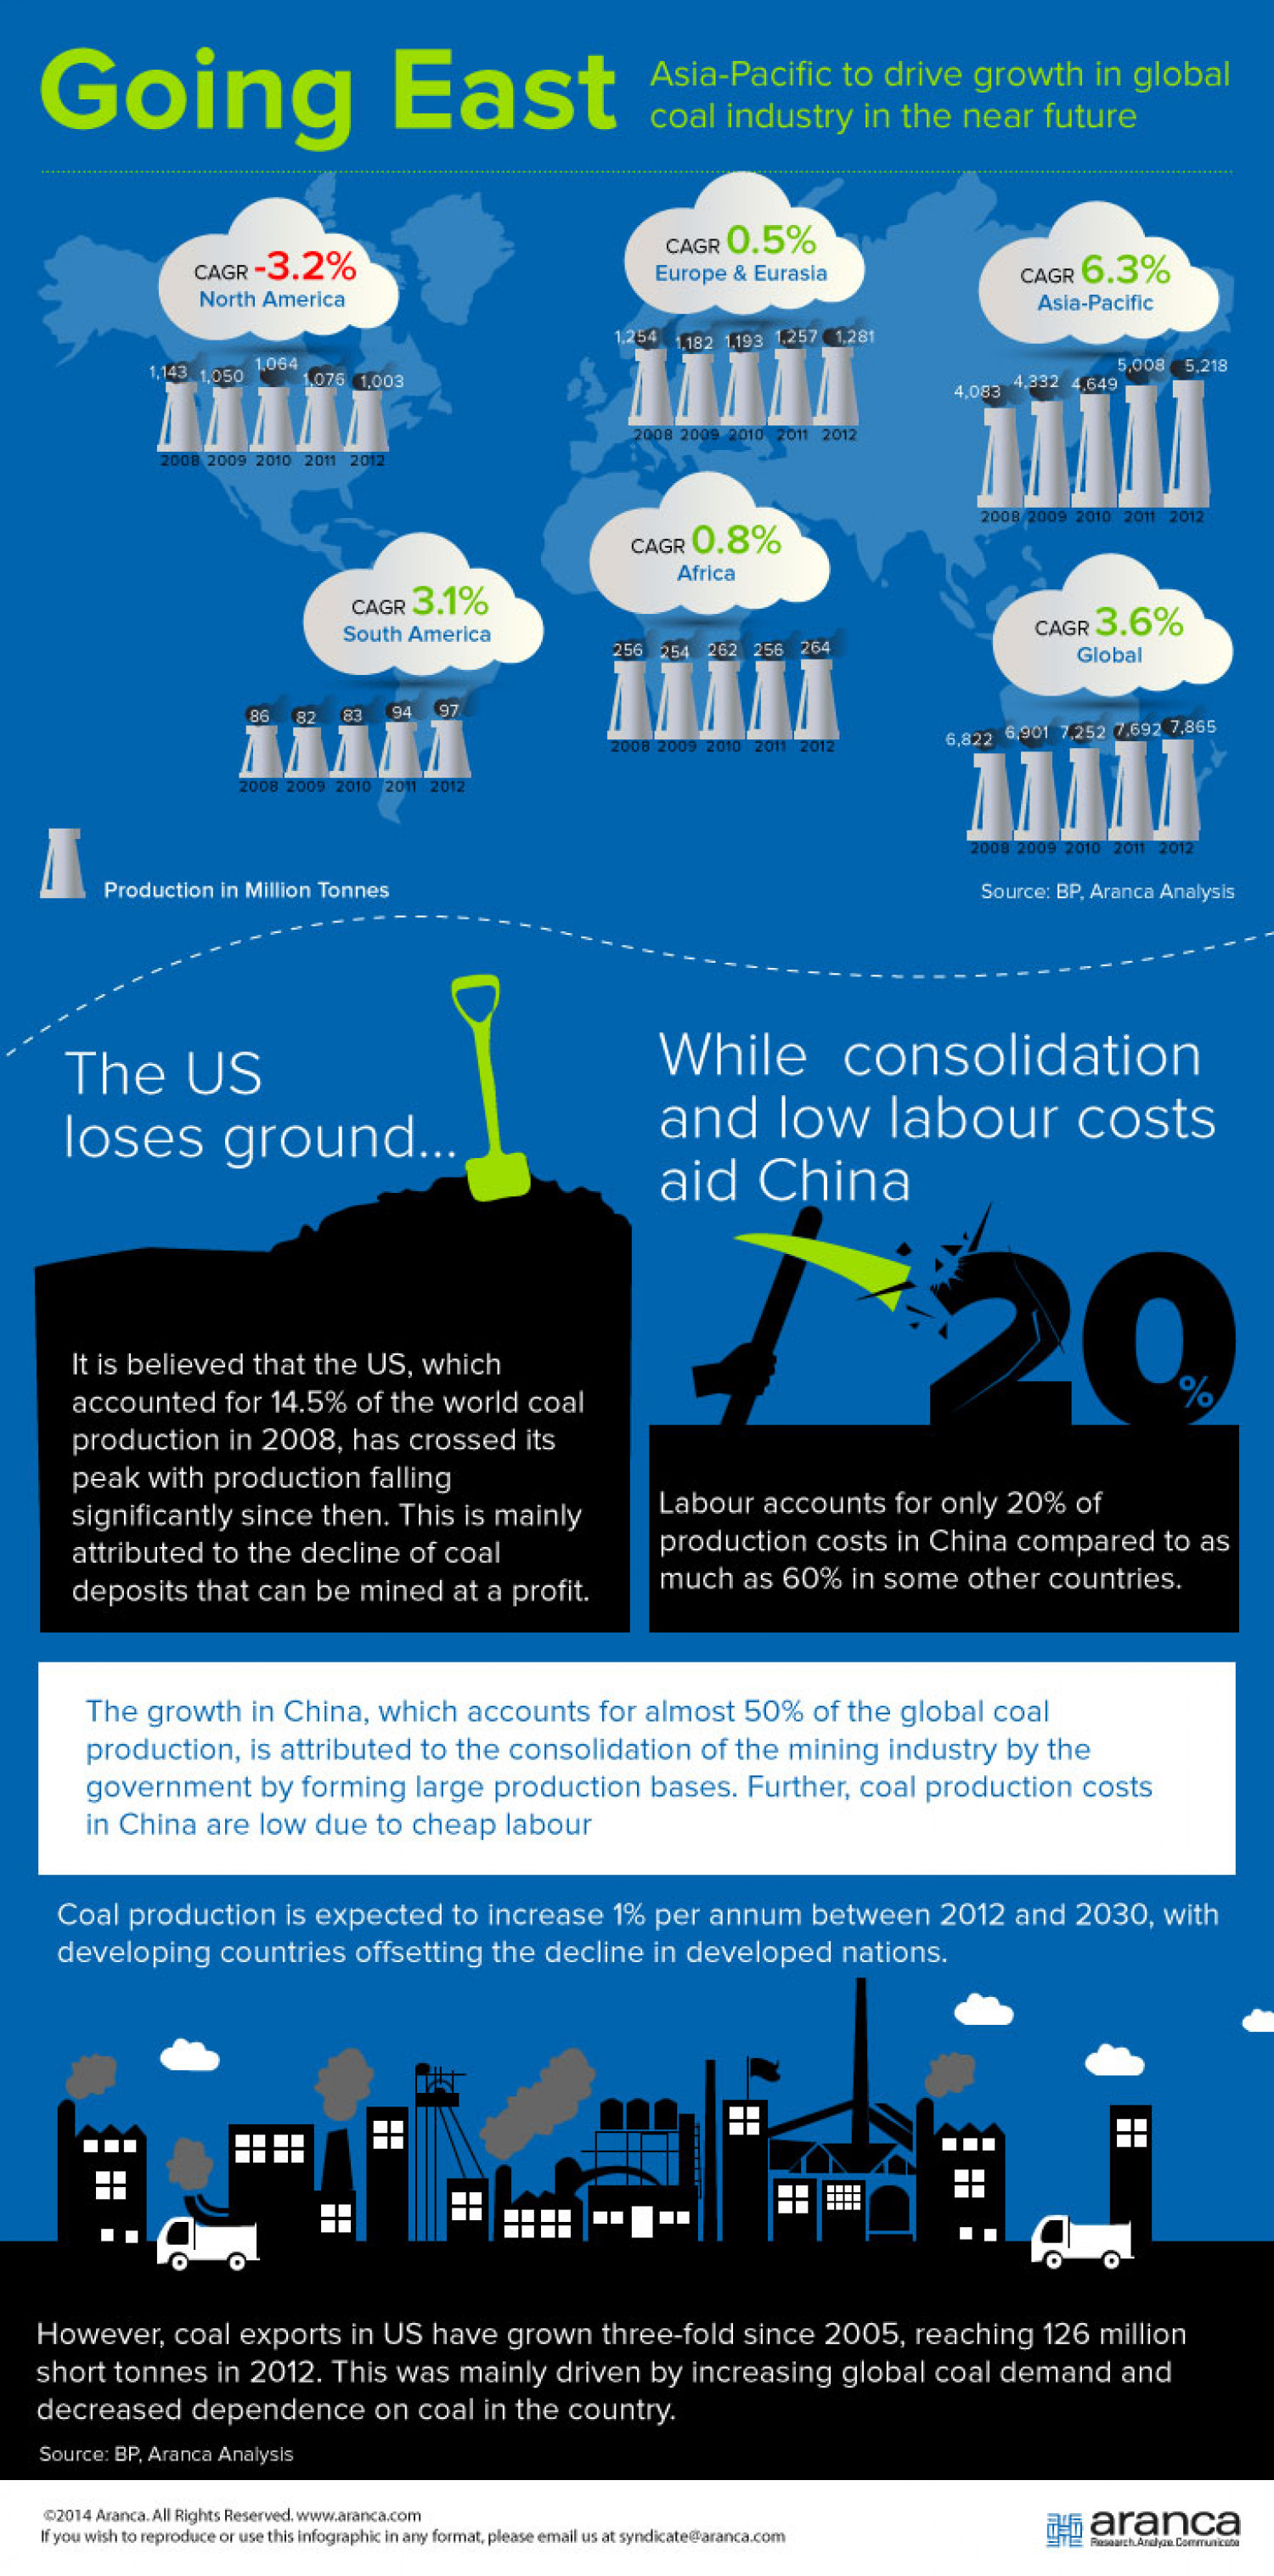 Aranca   Going East – Asia Pacific to Drive Growth in Global Coal Industry in the Near Future   Infographic Infographic